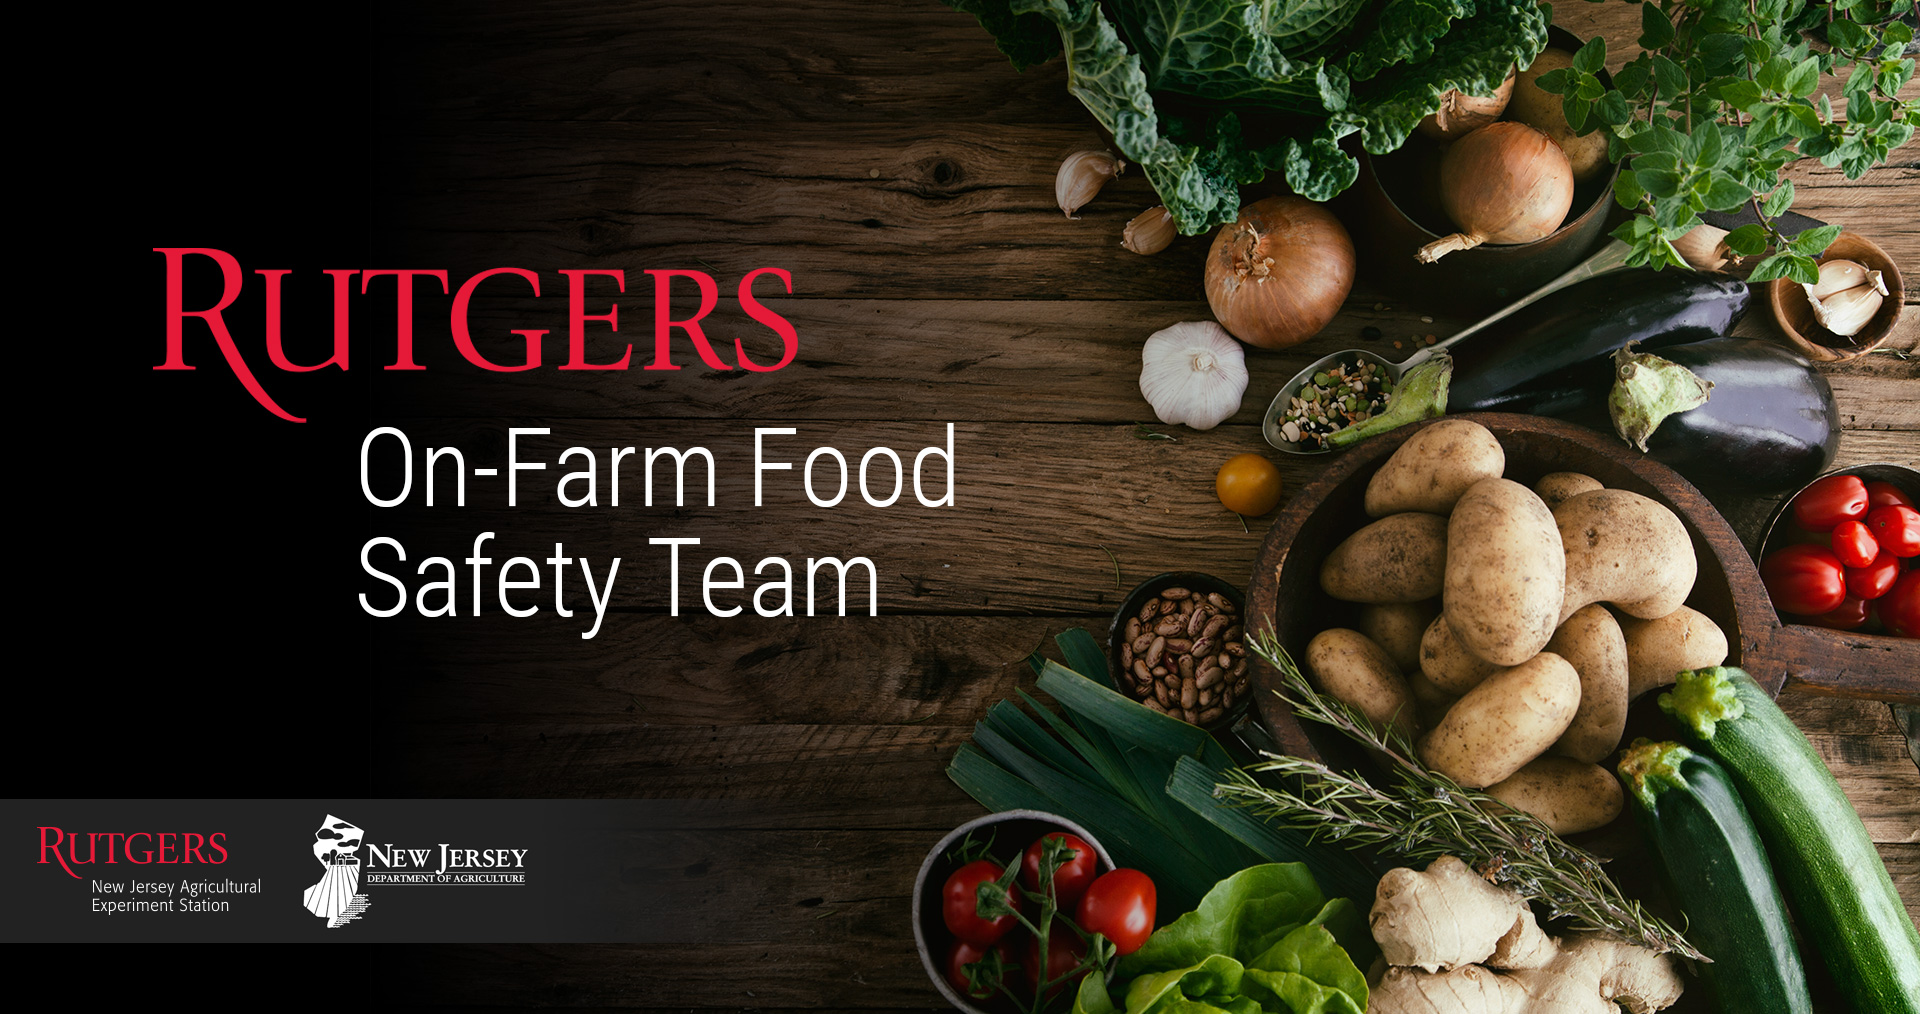 Food Safety Publications - Rutgers On-Farm Food Safety